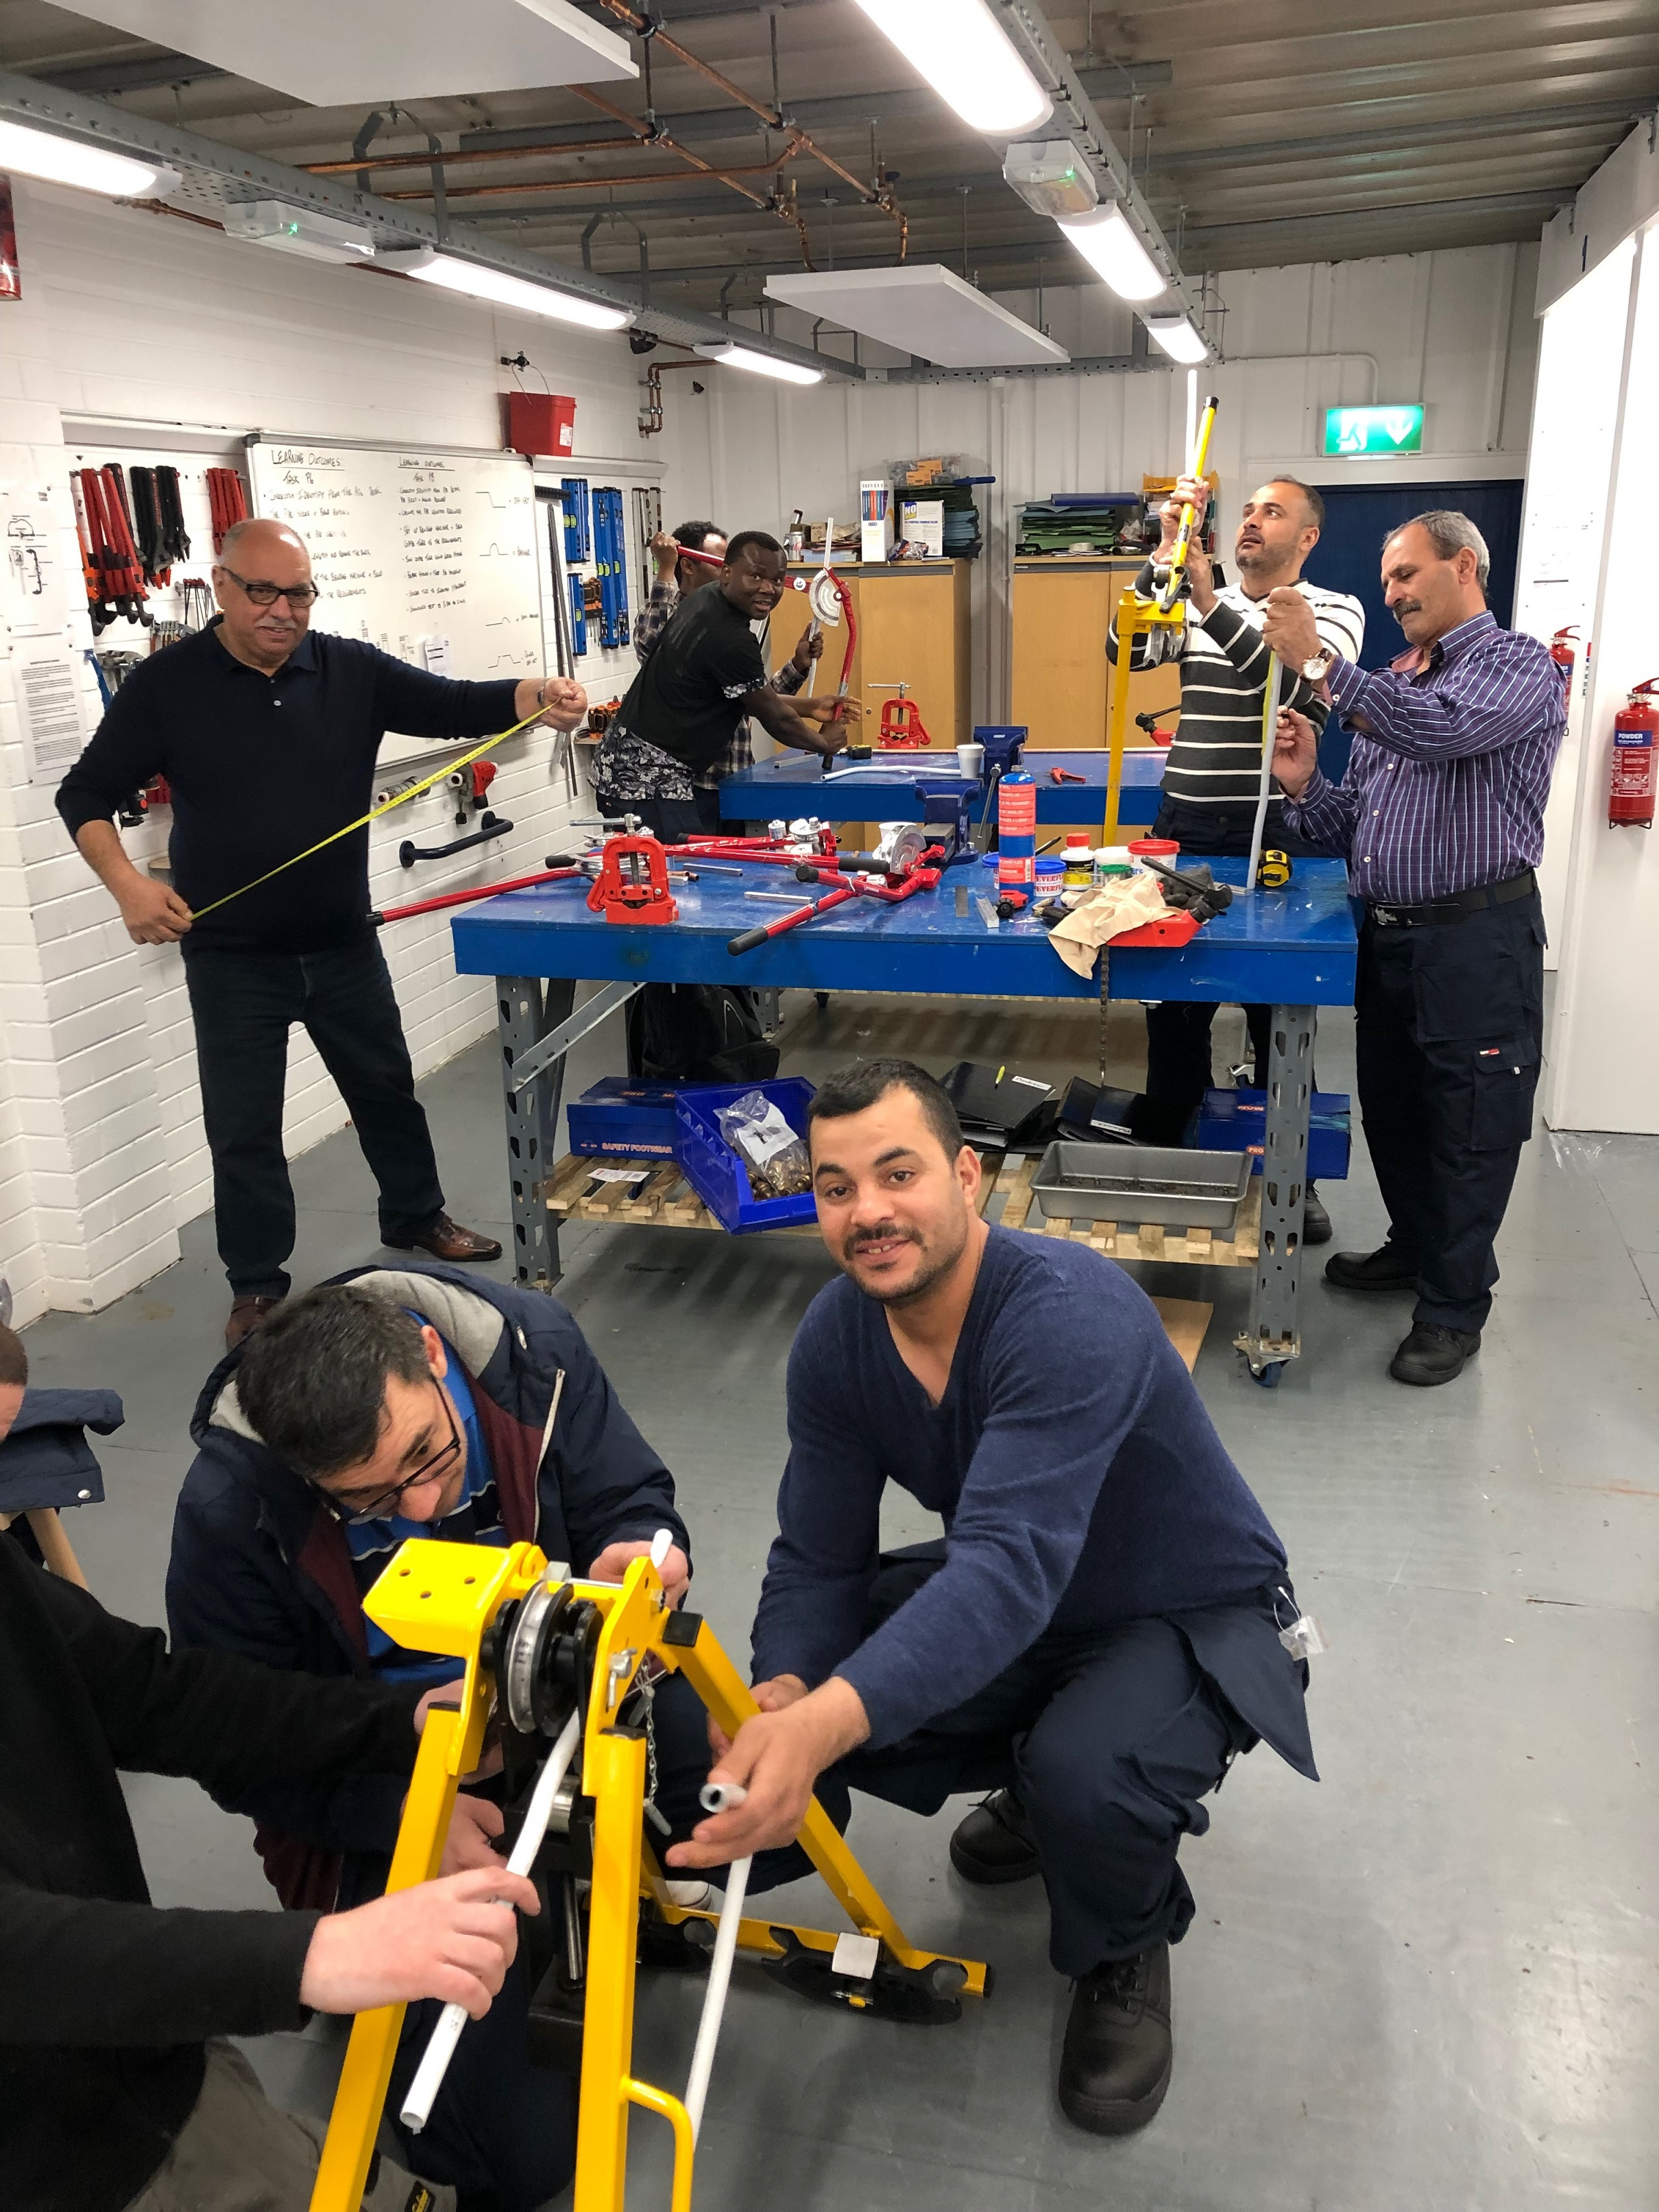 A photo of refugee men using tools in a workshop. They are taking part in a Belfast based innovative language and employability programme for refugees developed by Conway Education Centre.